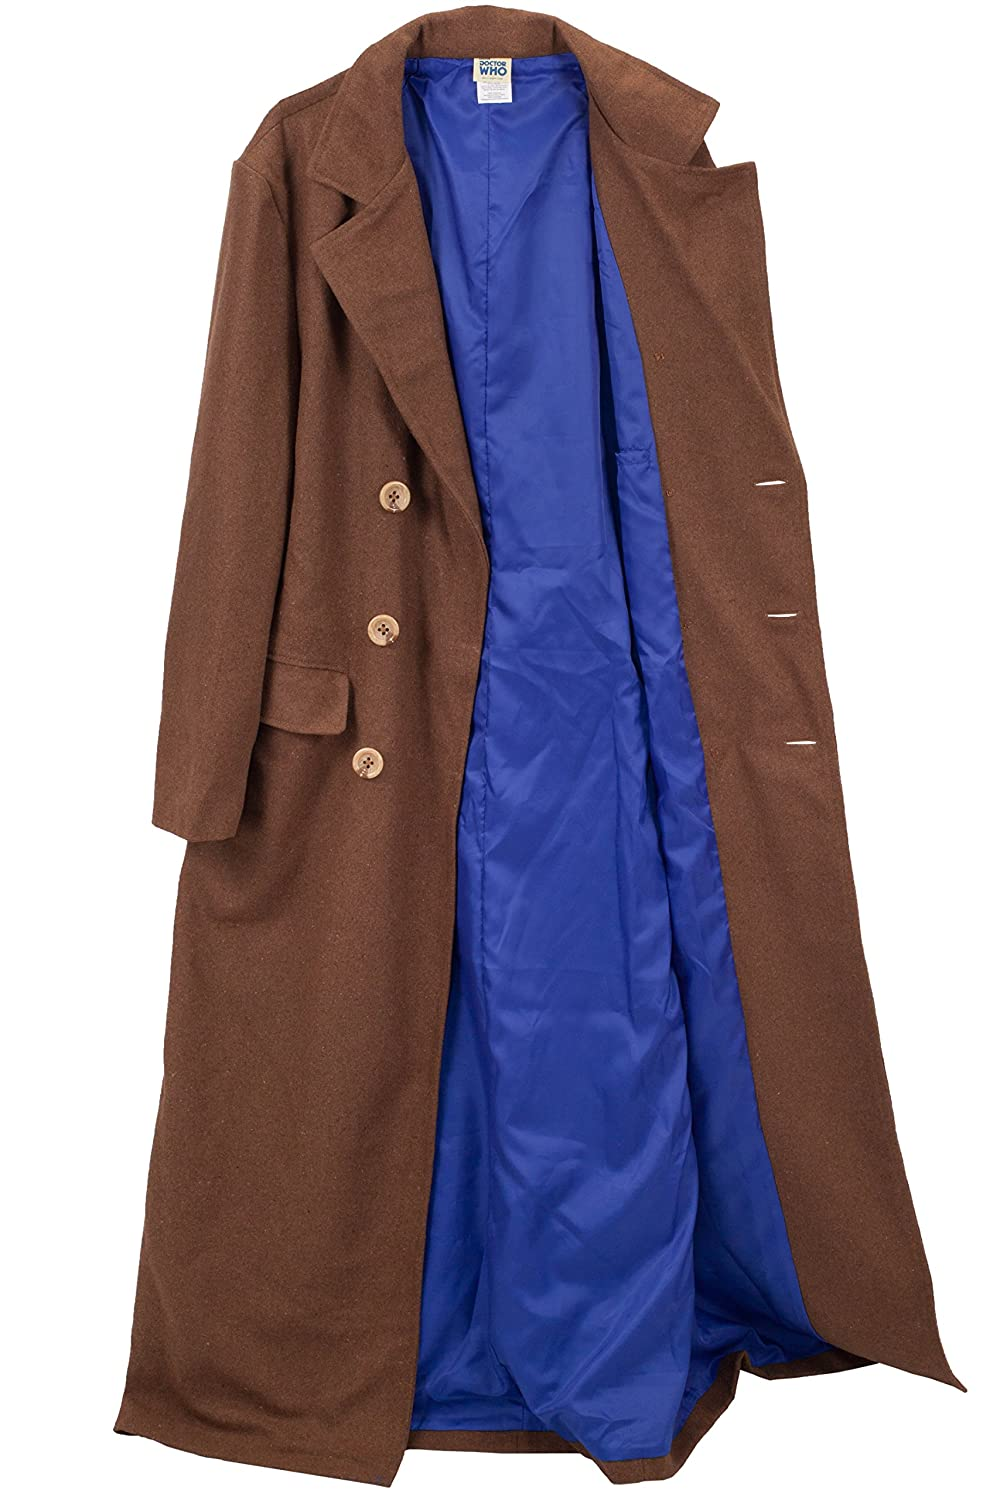 Men's Vintage Style Coats and Jackets Doctor Who Tenth Doctor Adult Costume Jacket $65.18 AT vintagedancer.com